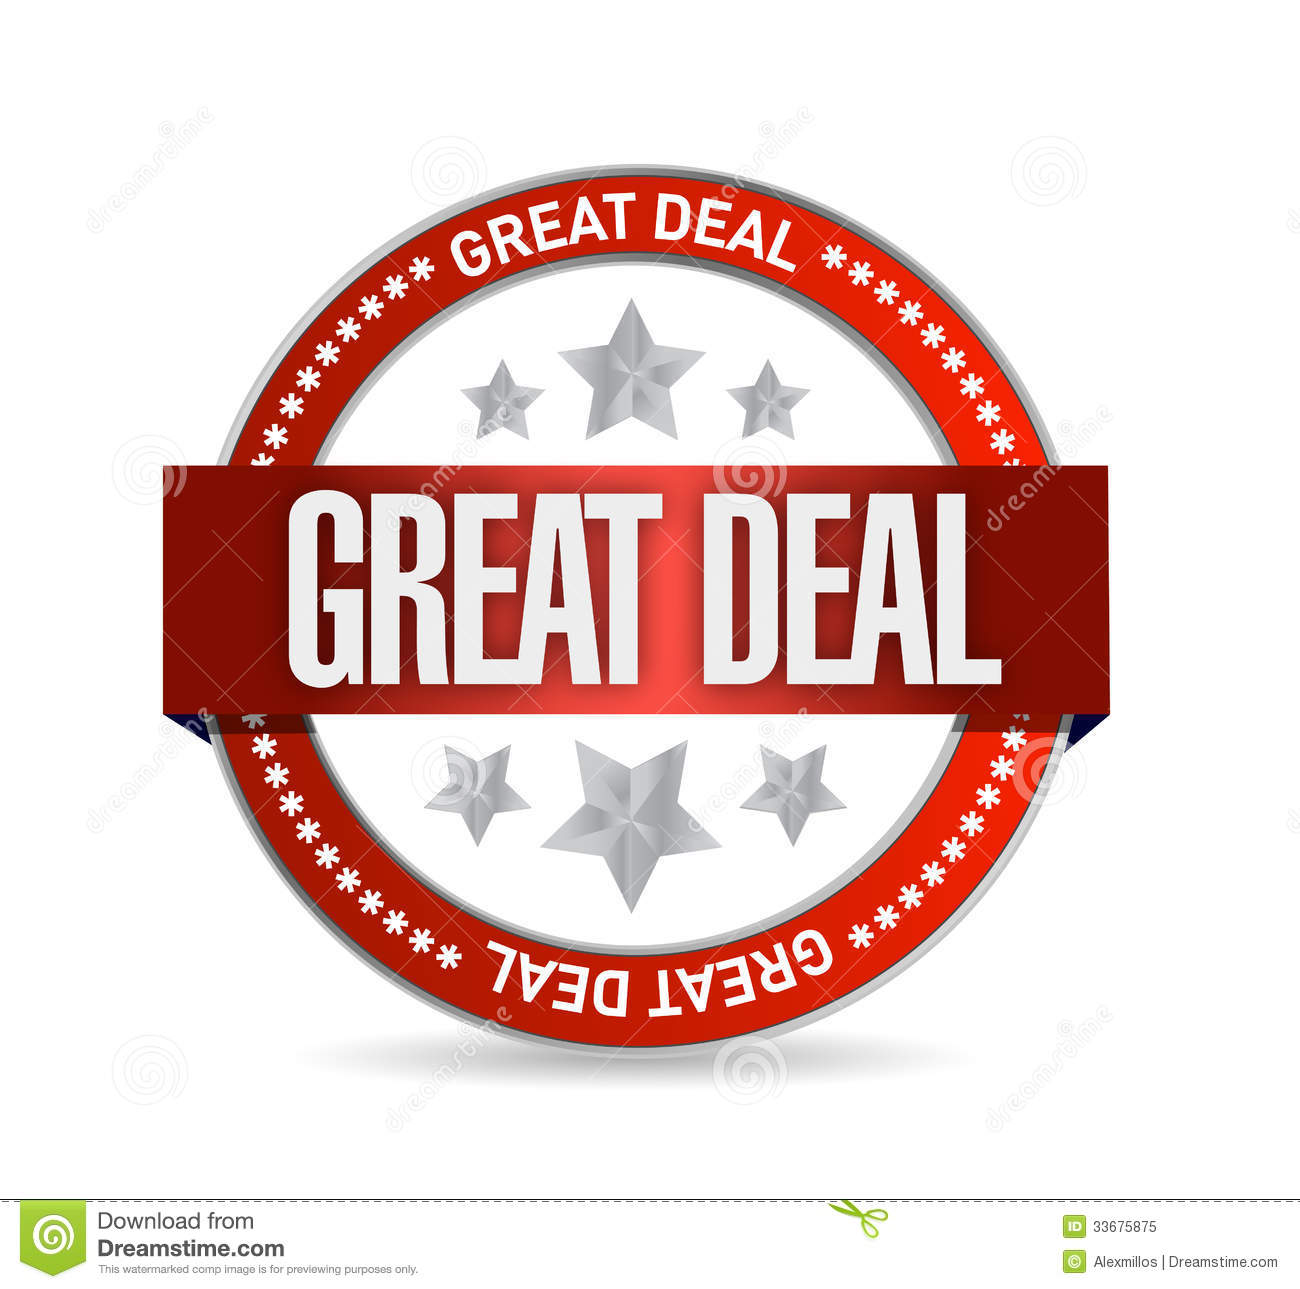 Great Deal Seal Illustration Design Royalty Free Stock Photo   Image